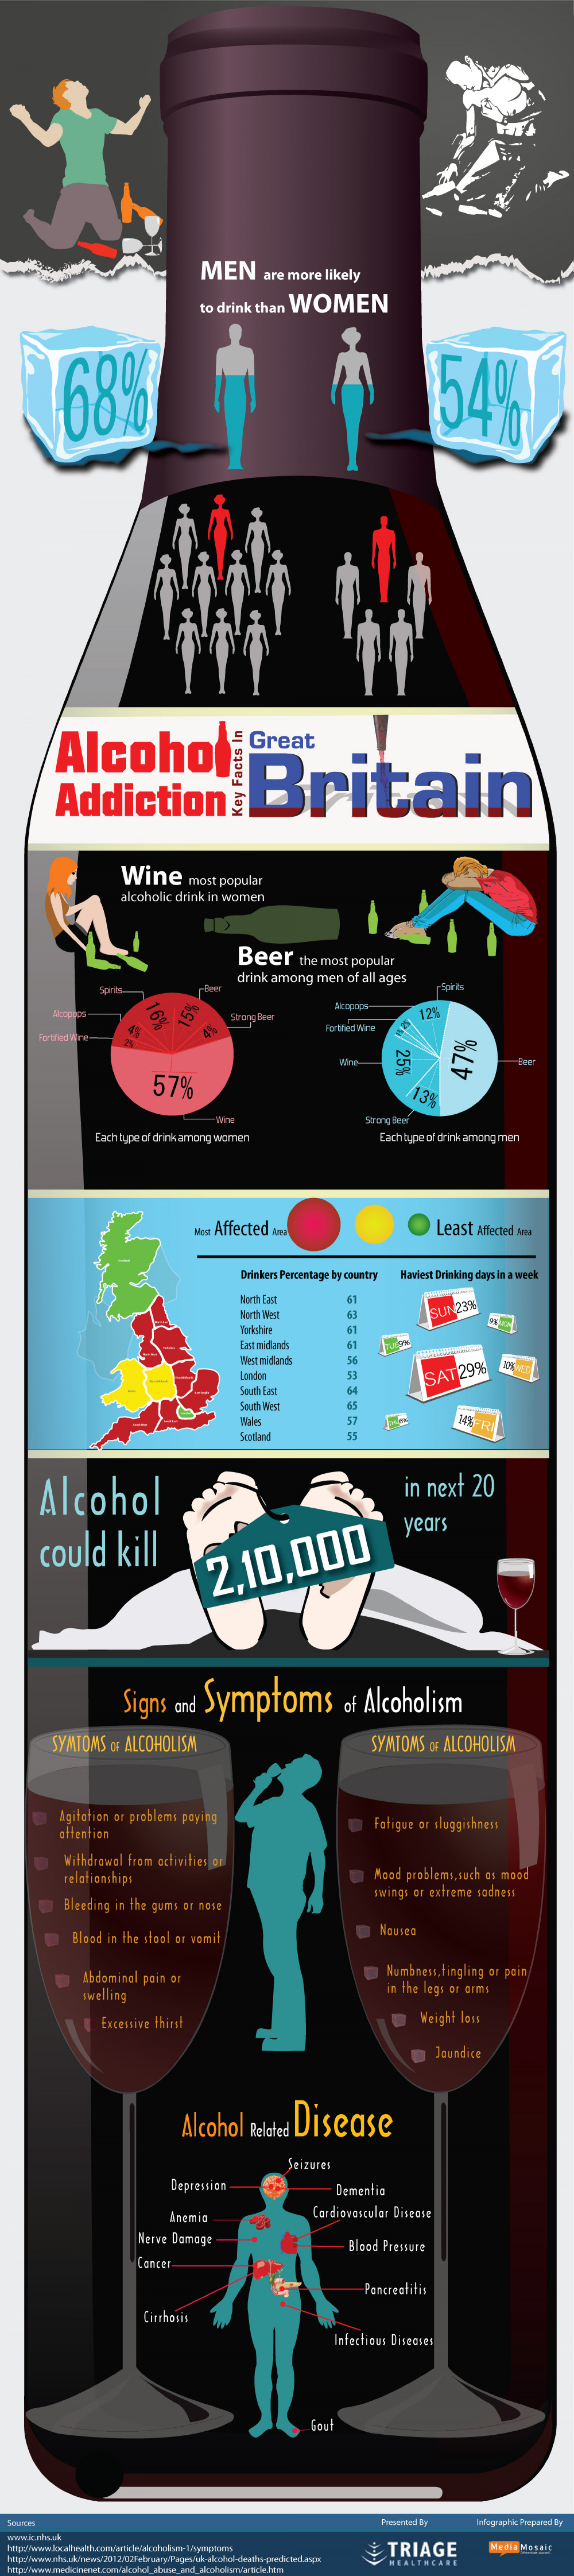 Addiction, Dependency and Effects of Drinking Alcohol Infographic